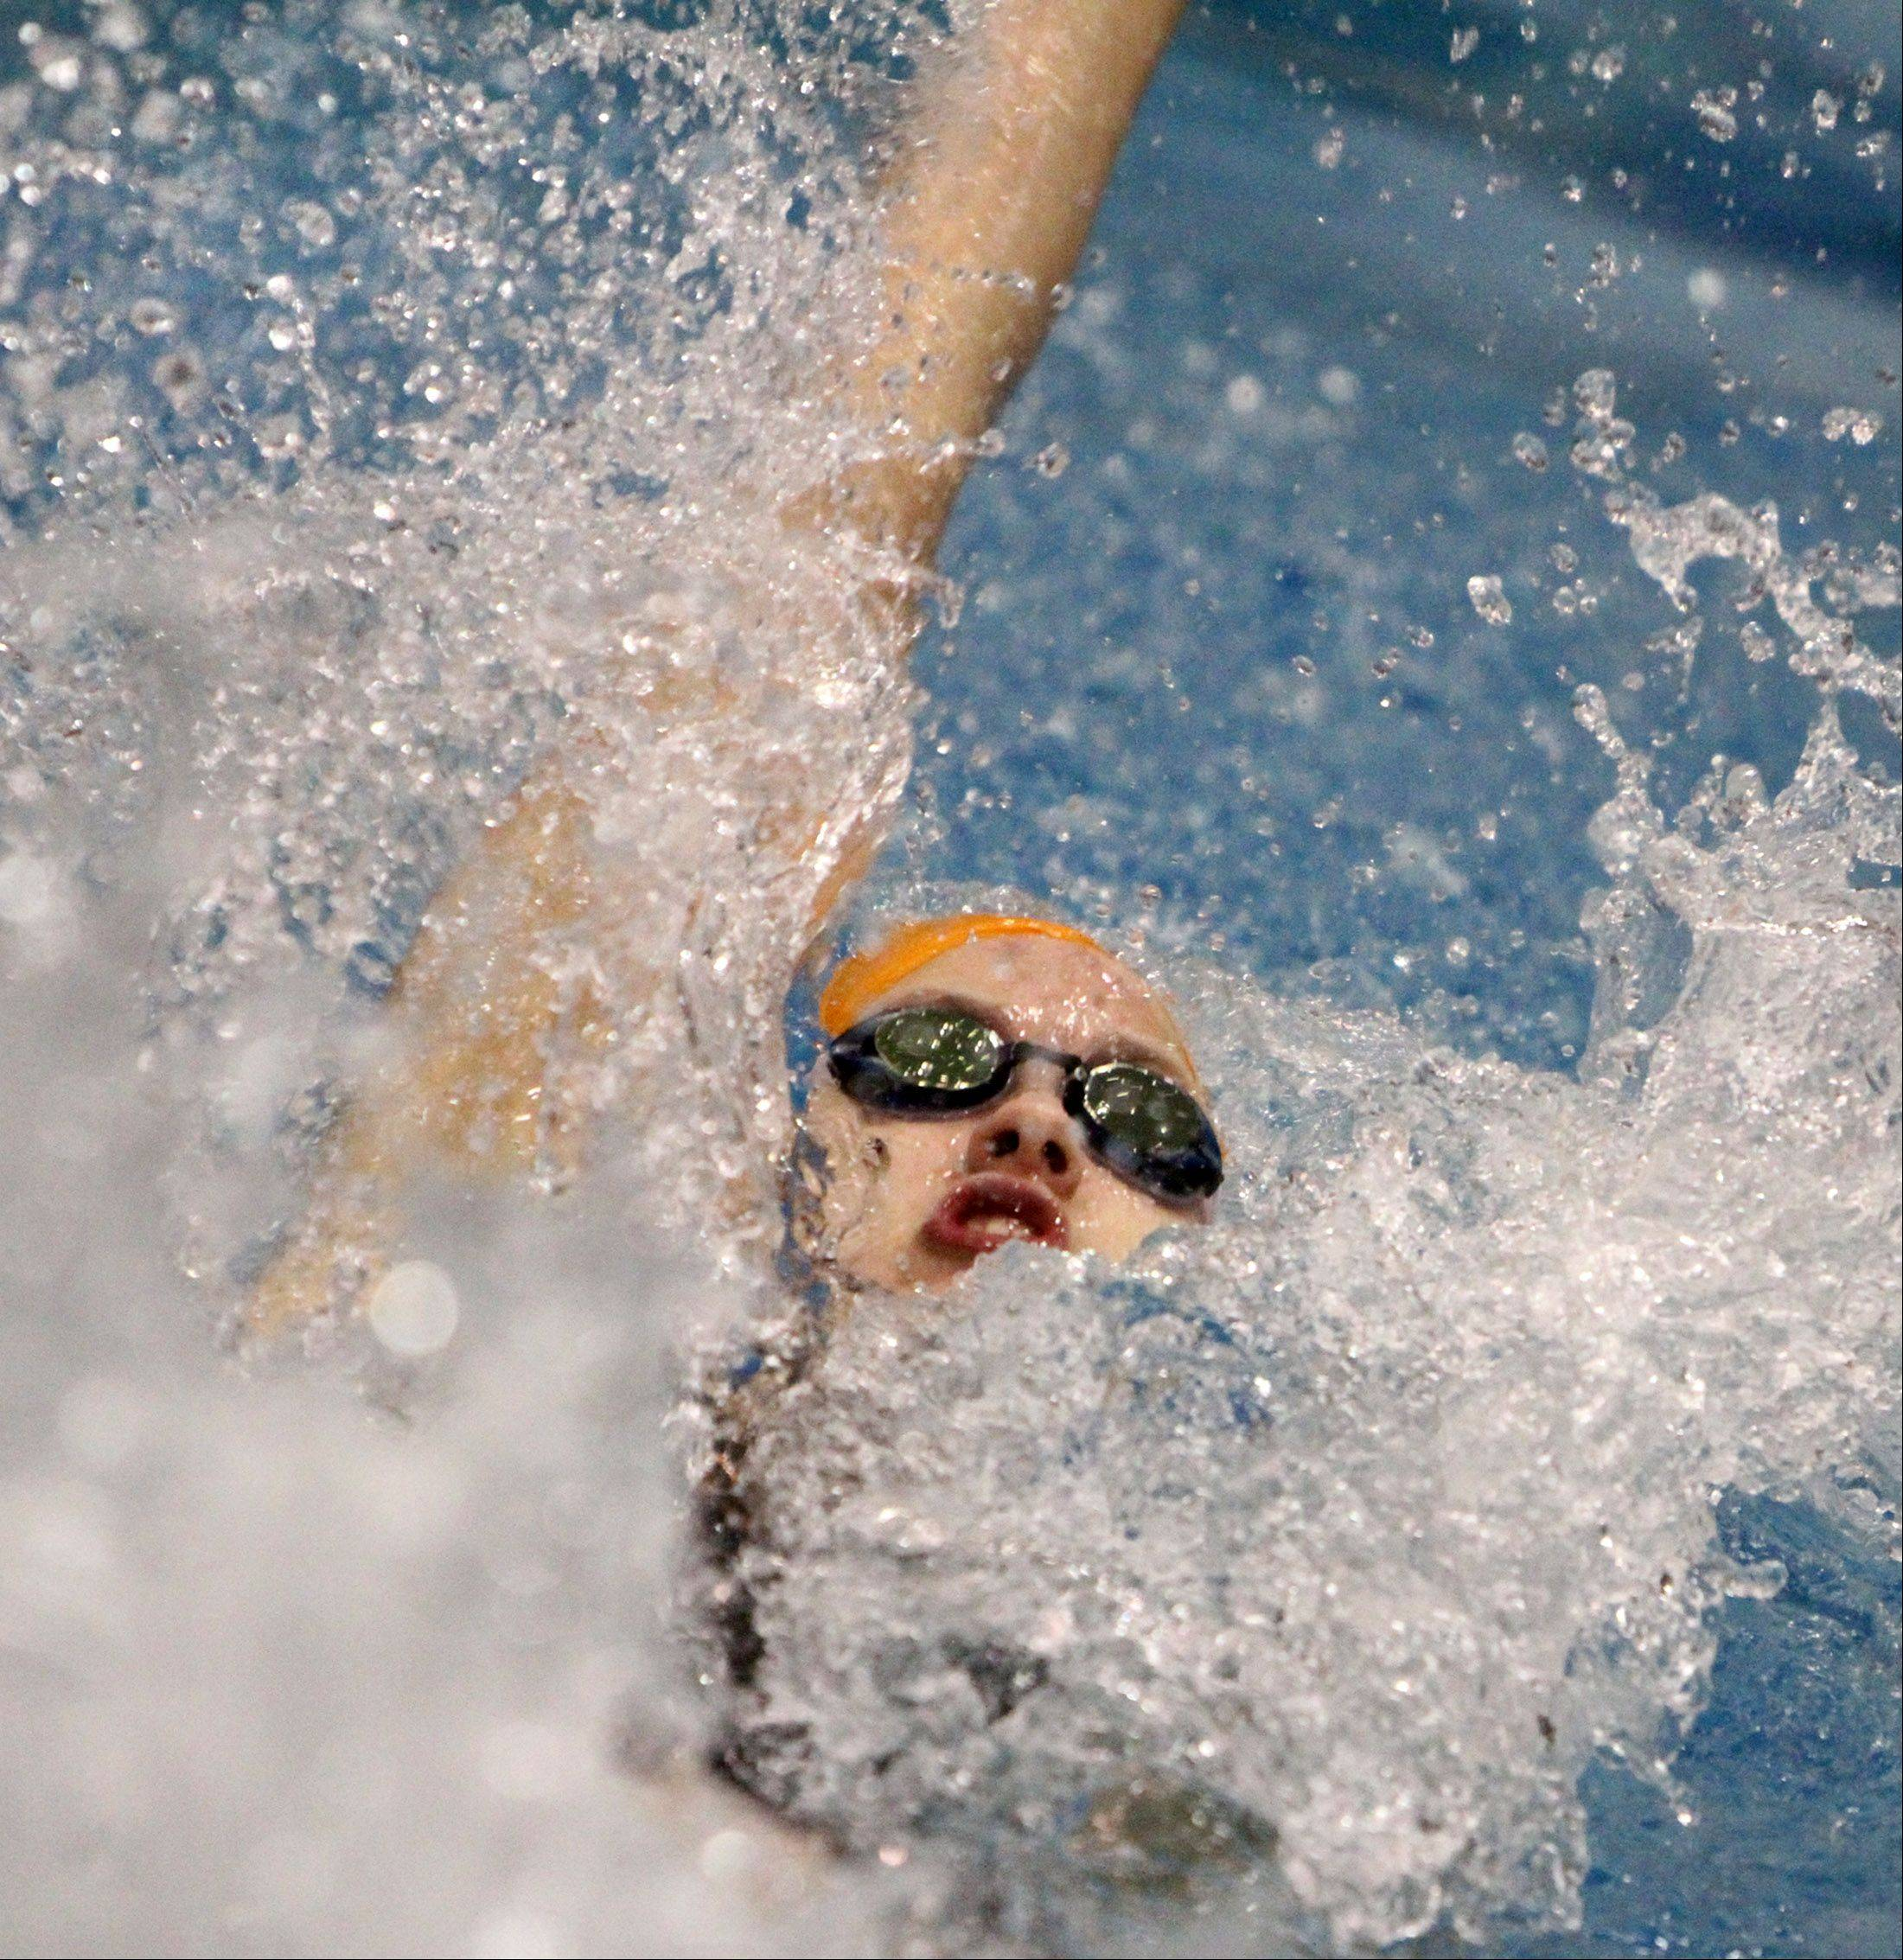 Buffalo Grove's Veronika Jedryka competes in the 100-yard backstroke at the IHSA state final preliminaries in Winnetka on Friday, November 18th.